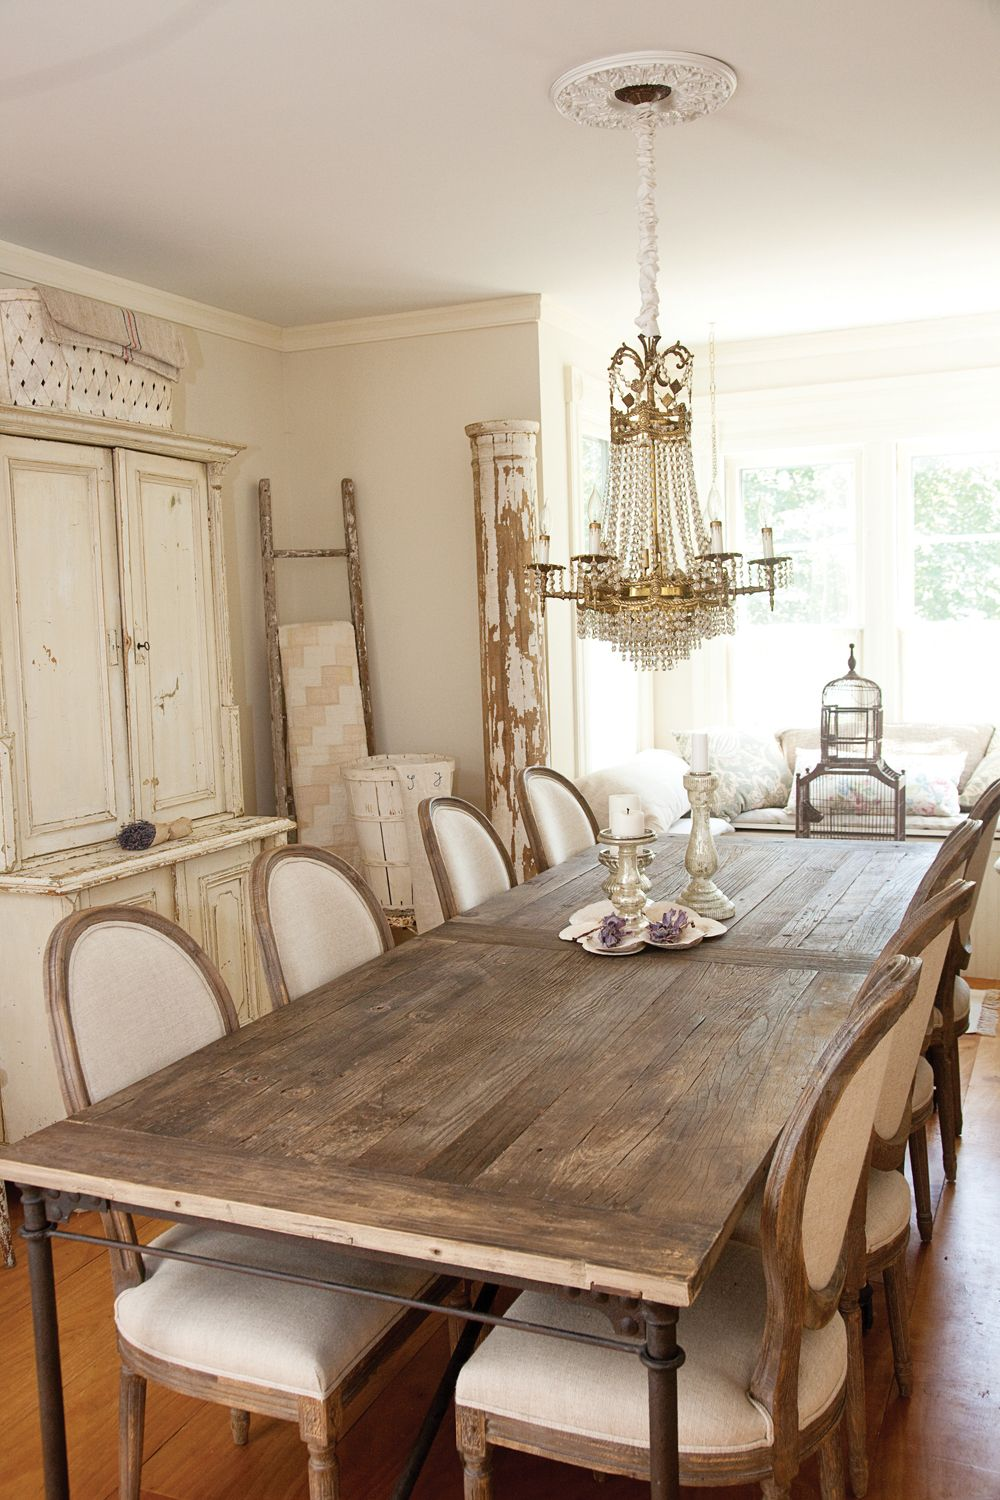 Vintage Cottage Chic Dining Room With Country French Chairs